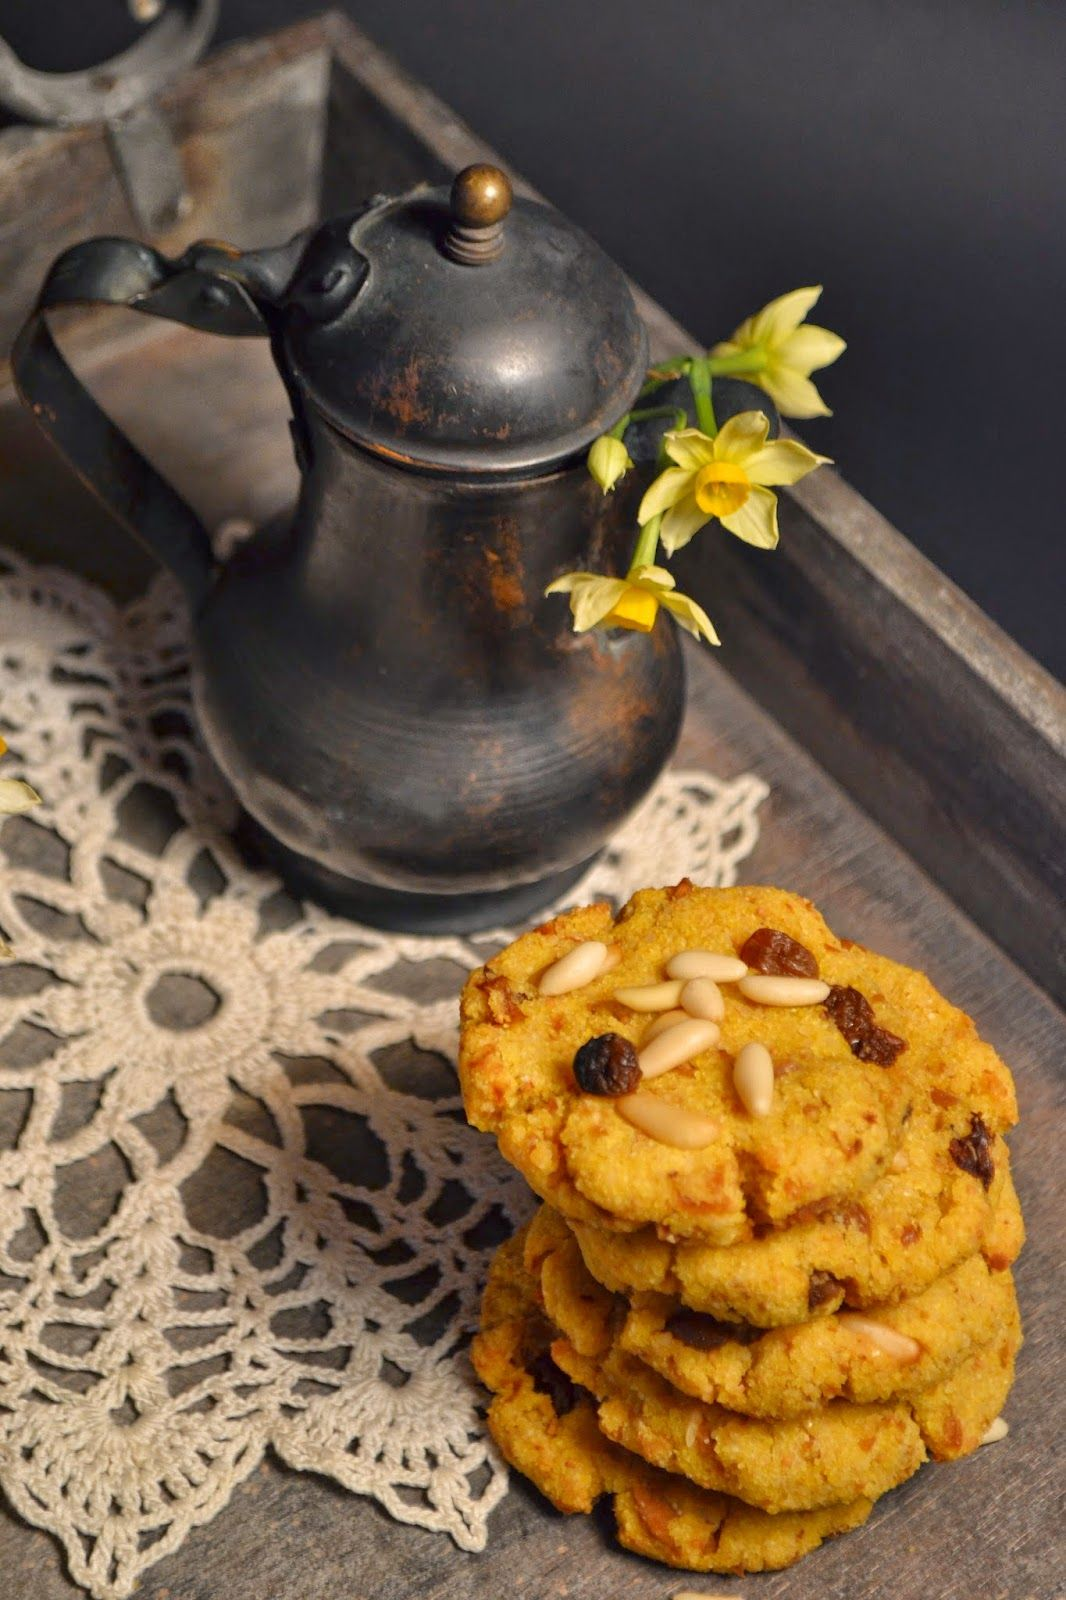 BECCUTE (Marche): small cakes enriched with raisins, pinenuts and dried figs